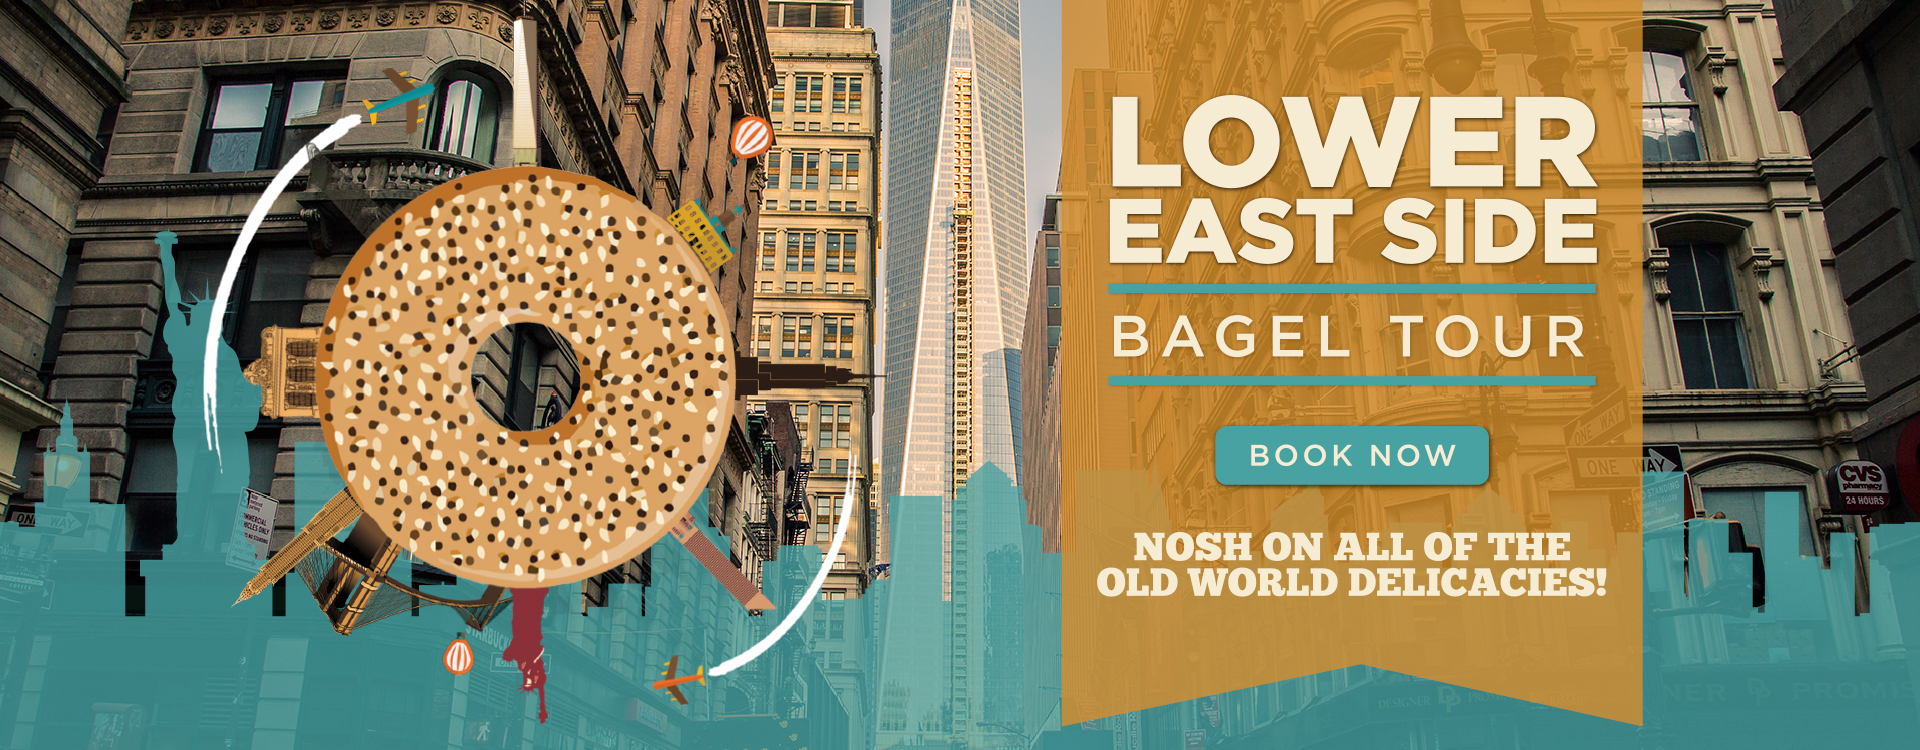 Bens Bagel Tour -Lower East Side